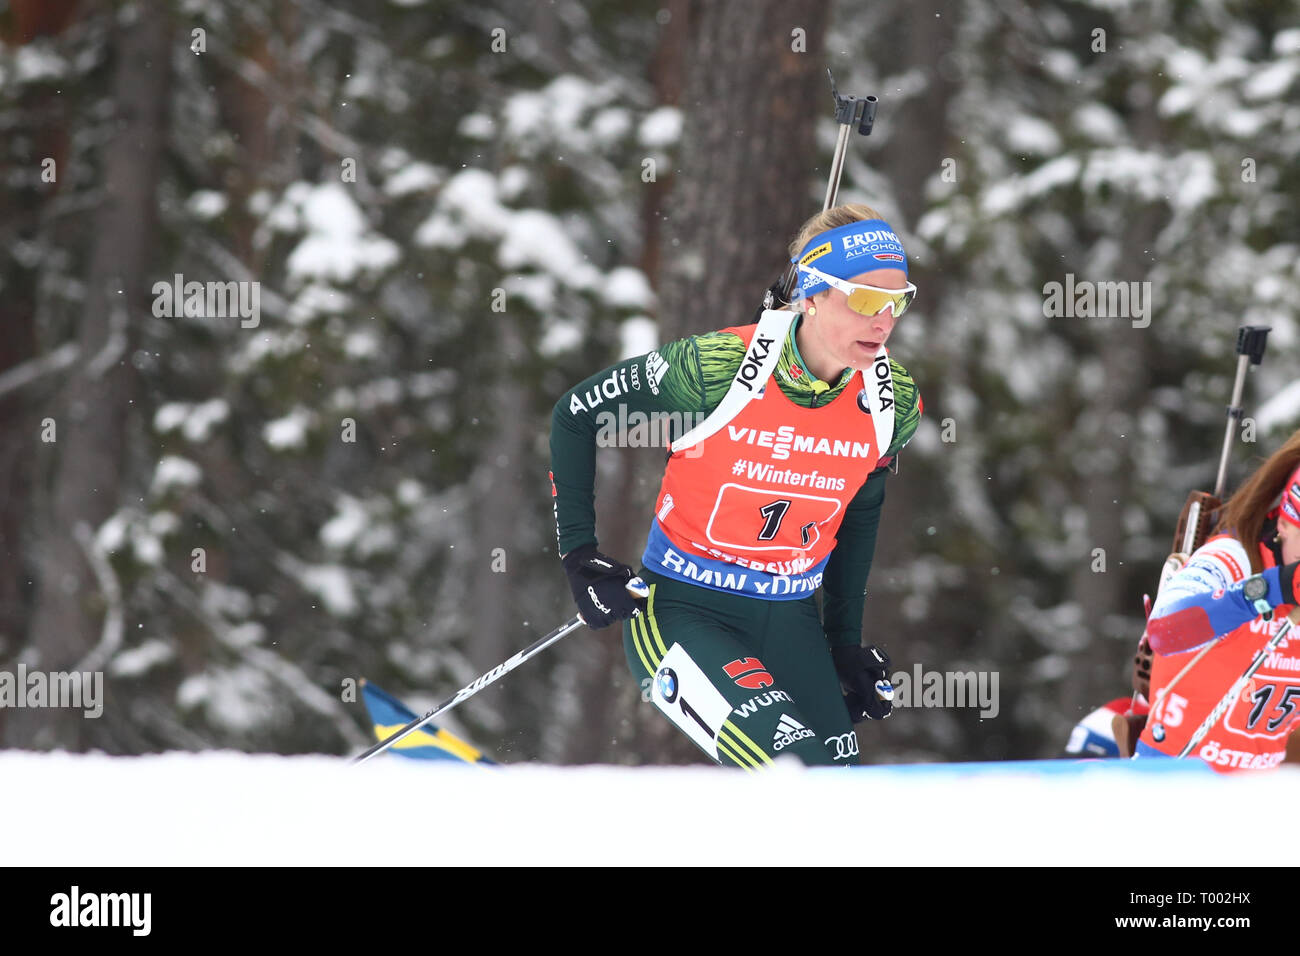 Ostersund, Sweden. 16th Mar, 2019. IBU World Championships Biathlon, day 8, ladies relay; Vanessa Hinz (GER) Credit: Action Plus Sports/Alamy Live News - Stock Image